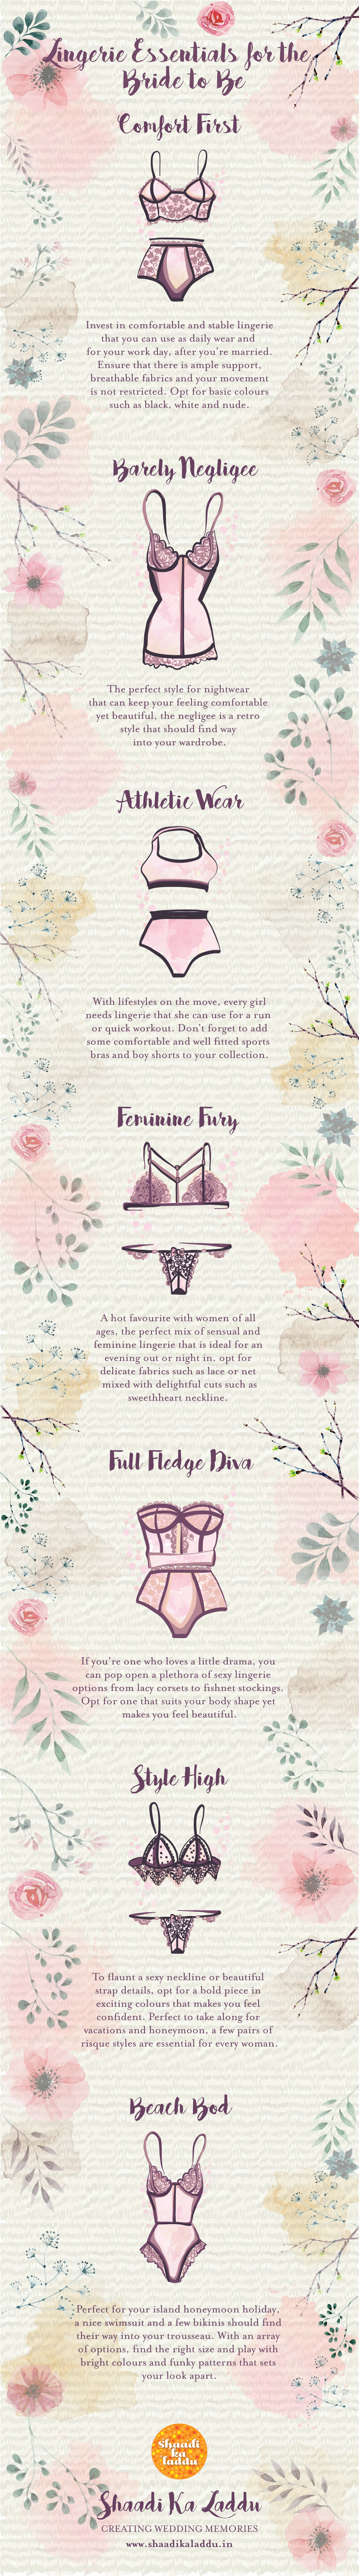 Lingerie-Essentials-for-the-Bride-to-Be_Final